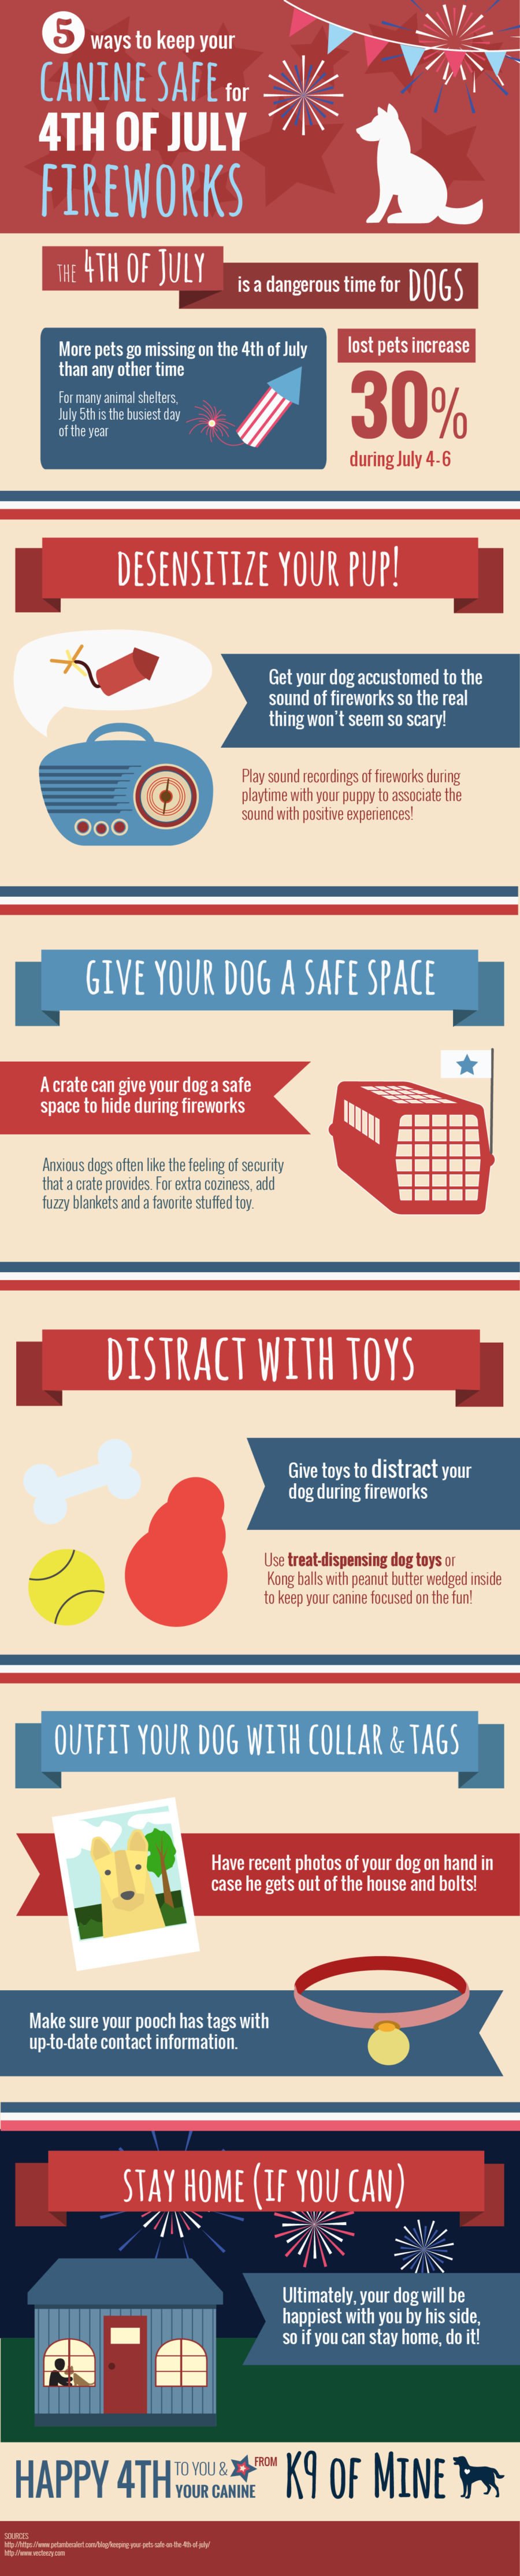 FitBark_k9ofMine_fourthsafety-900x4455 | 4th of July Dog Safety Tips